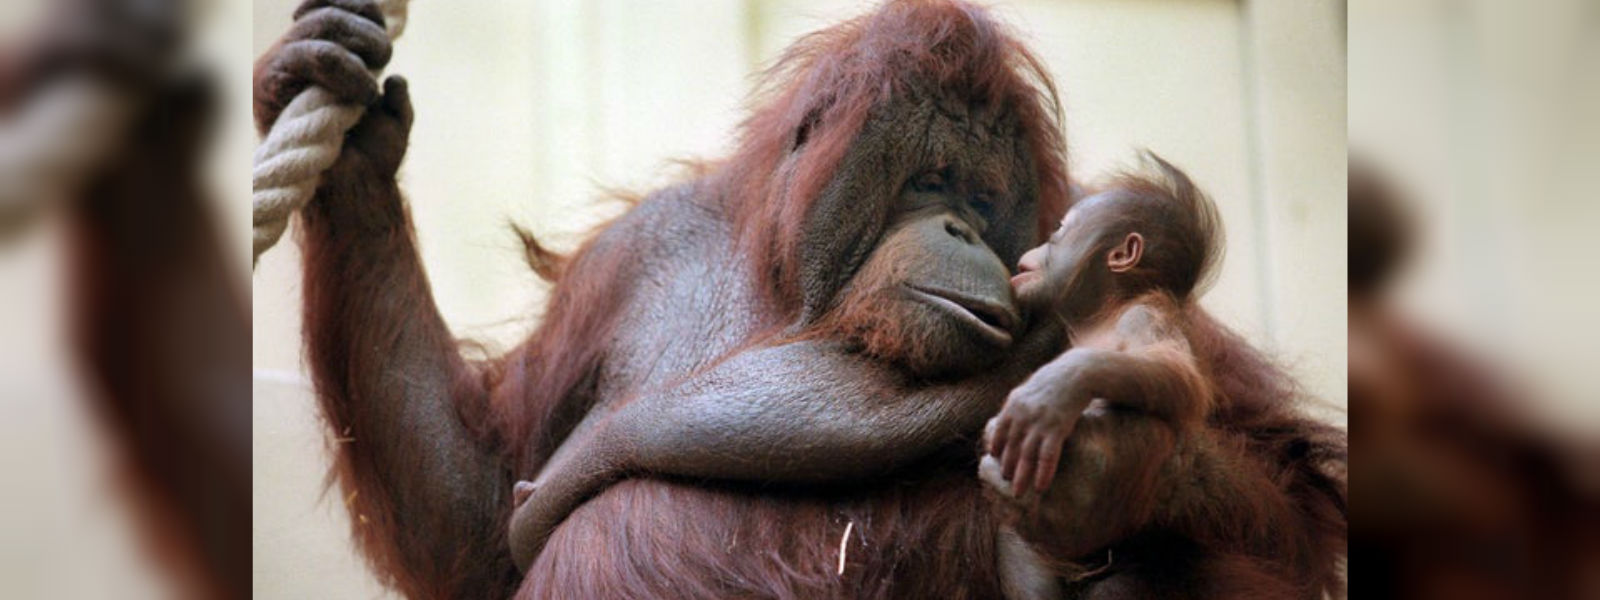 Orangutan by day, gifted painter by night: Paris zoo's Nenette turns 50